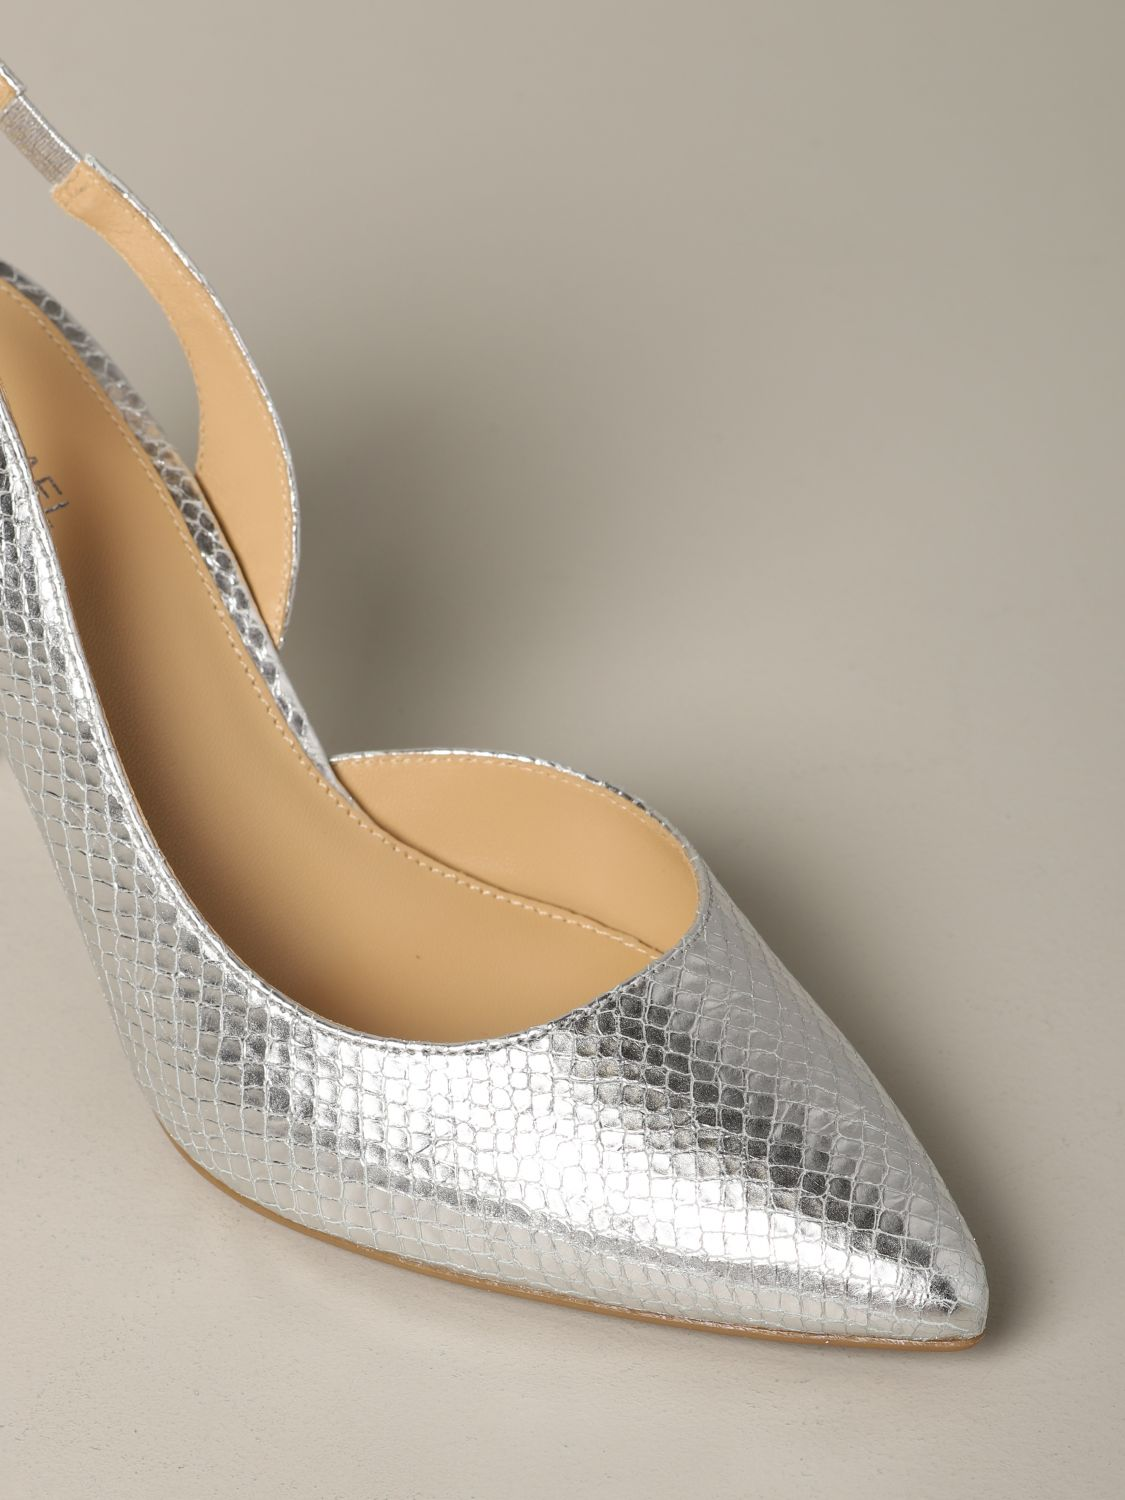 Michael Michael Kors Lucille flex d'orsay pumps in python print leather silver 4